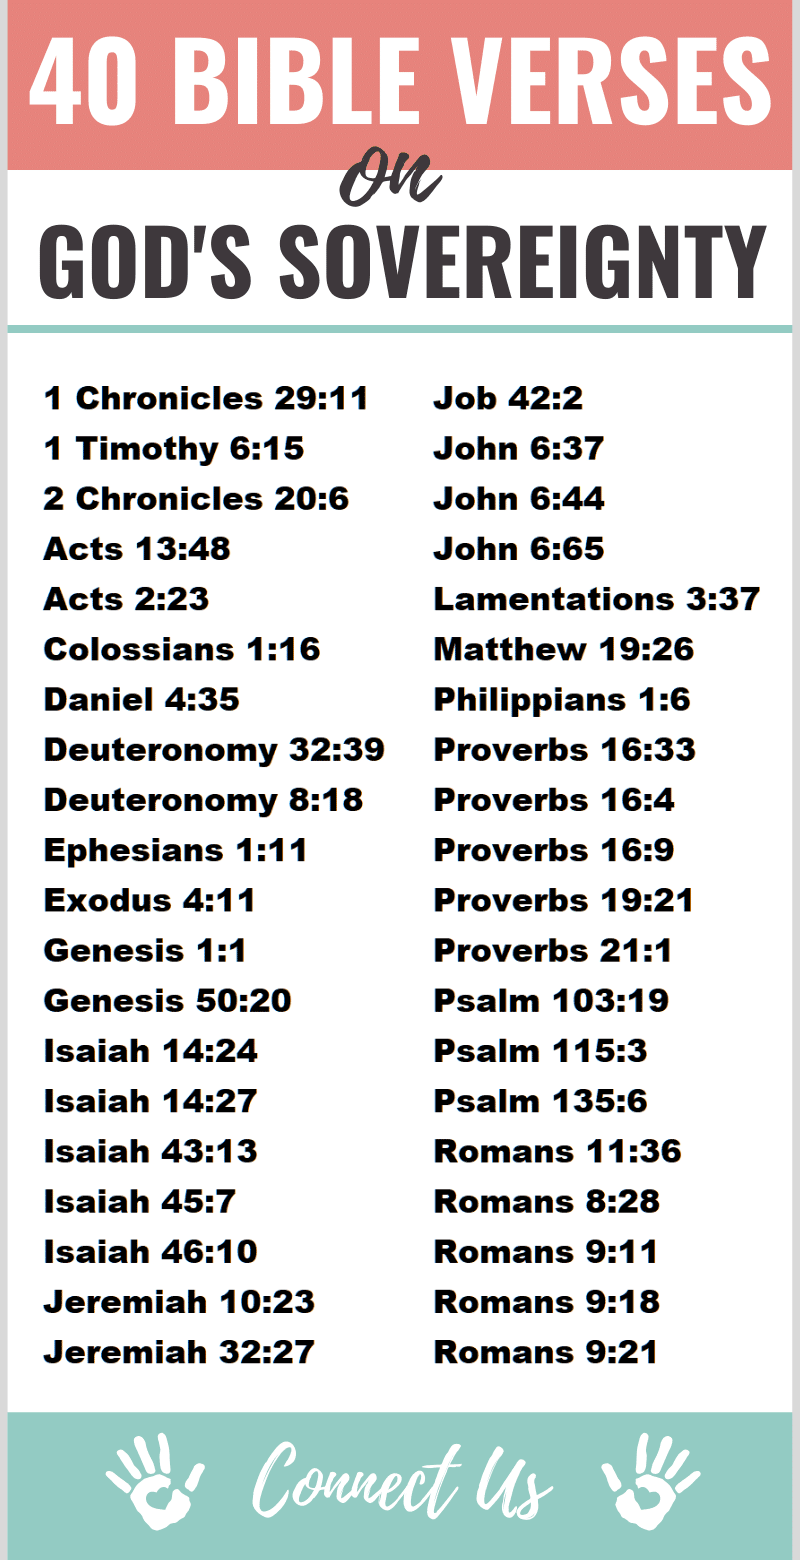 Bible Verses on God's Sovereignty